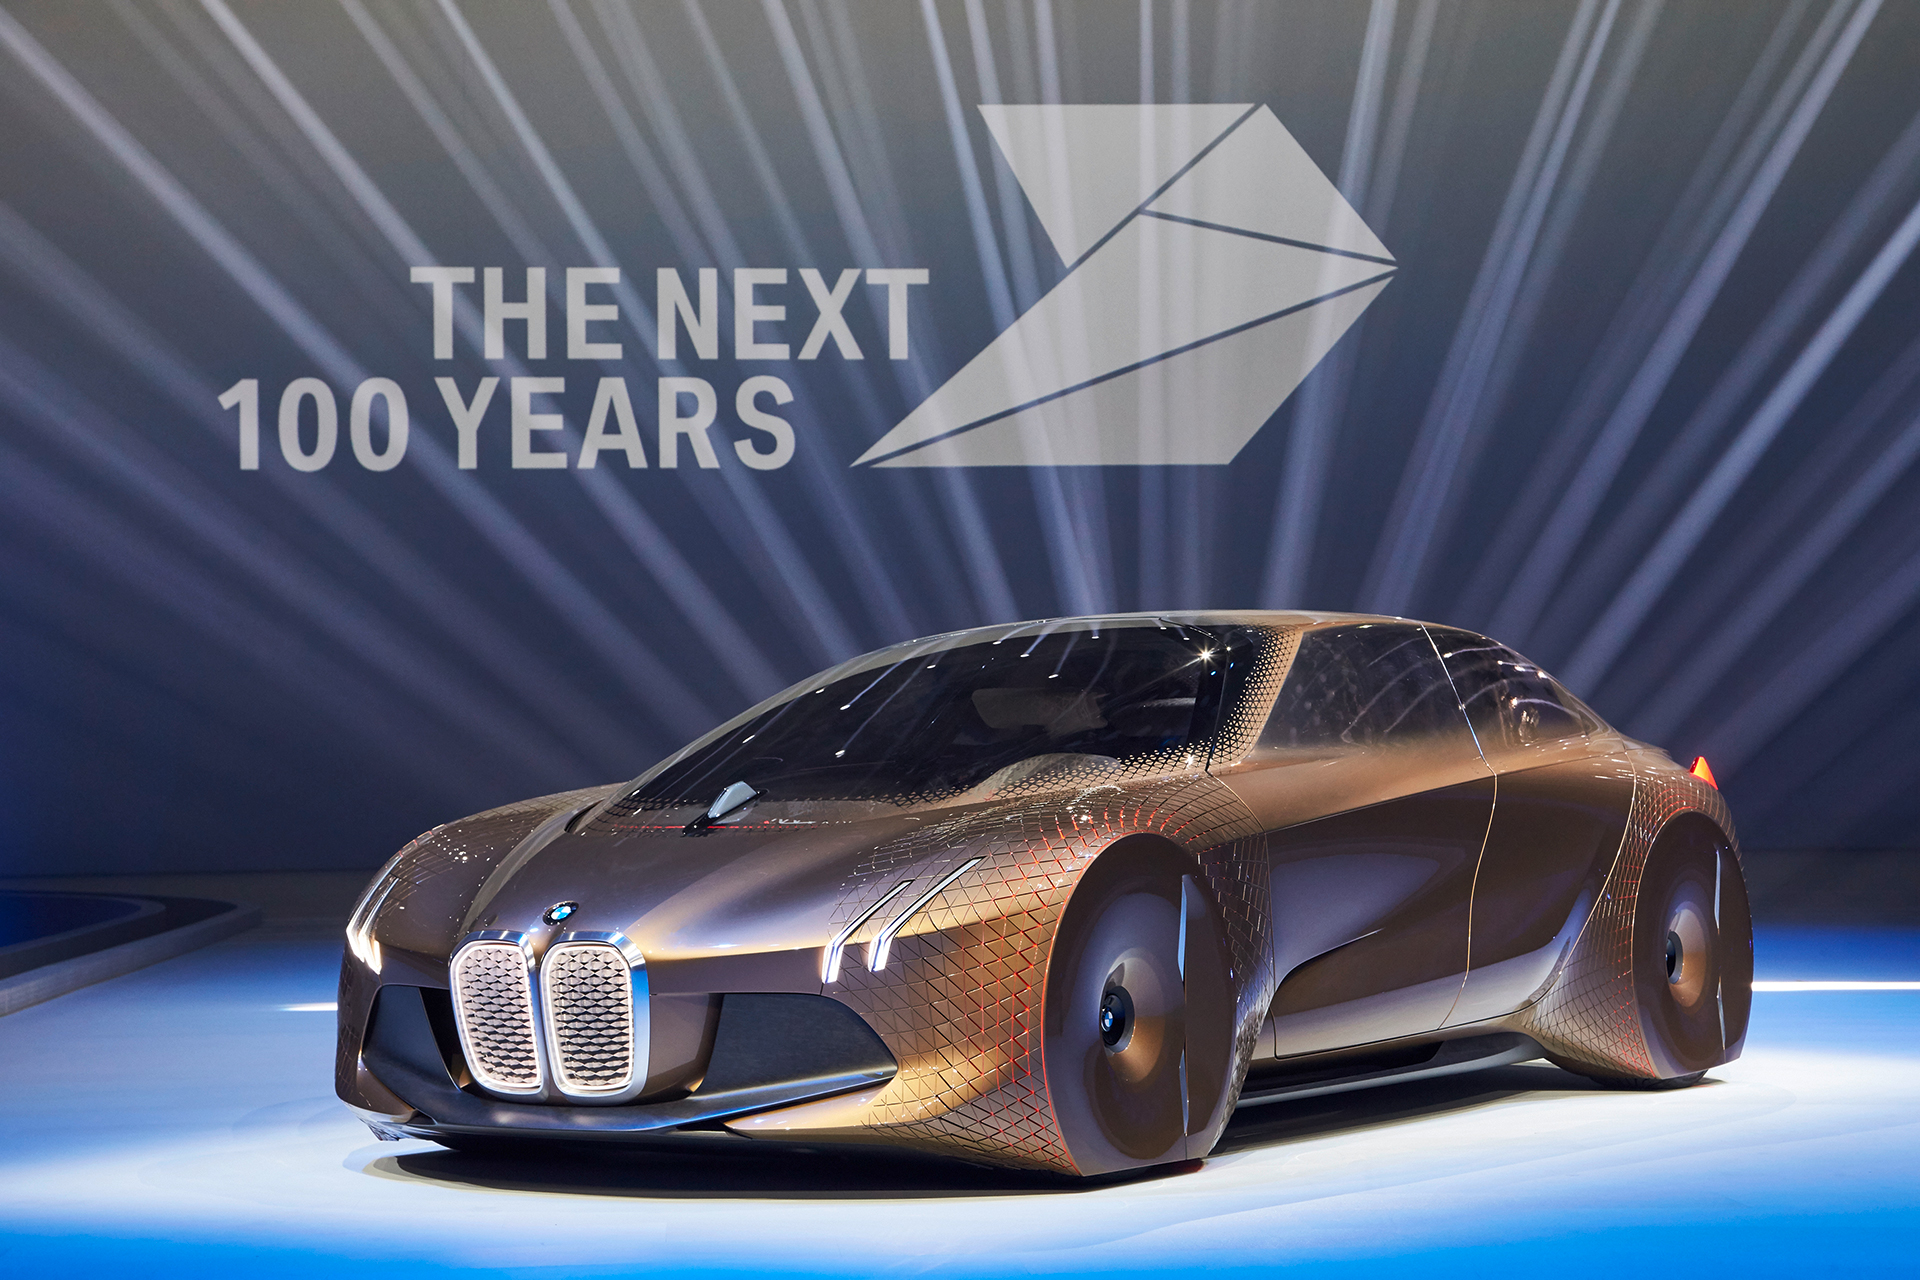 BMW VISION NEXT 100 - THE NEXT 100 YEARS